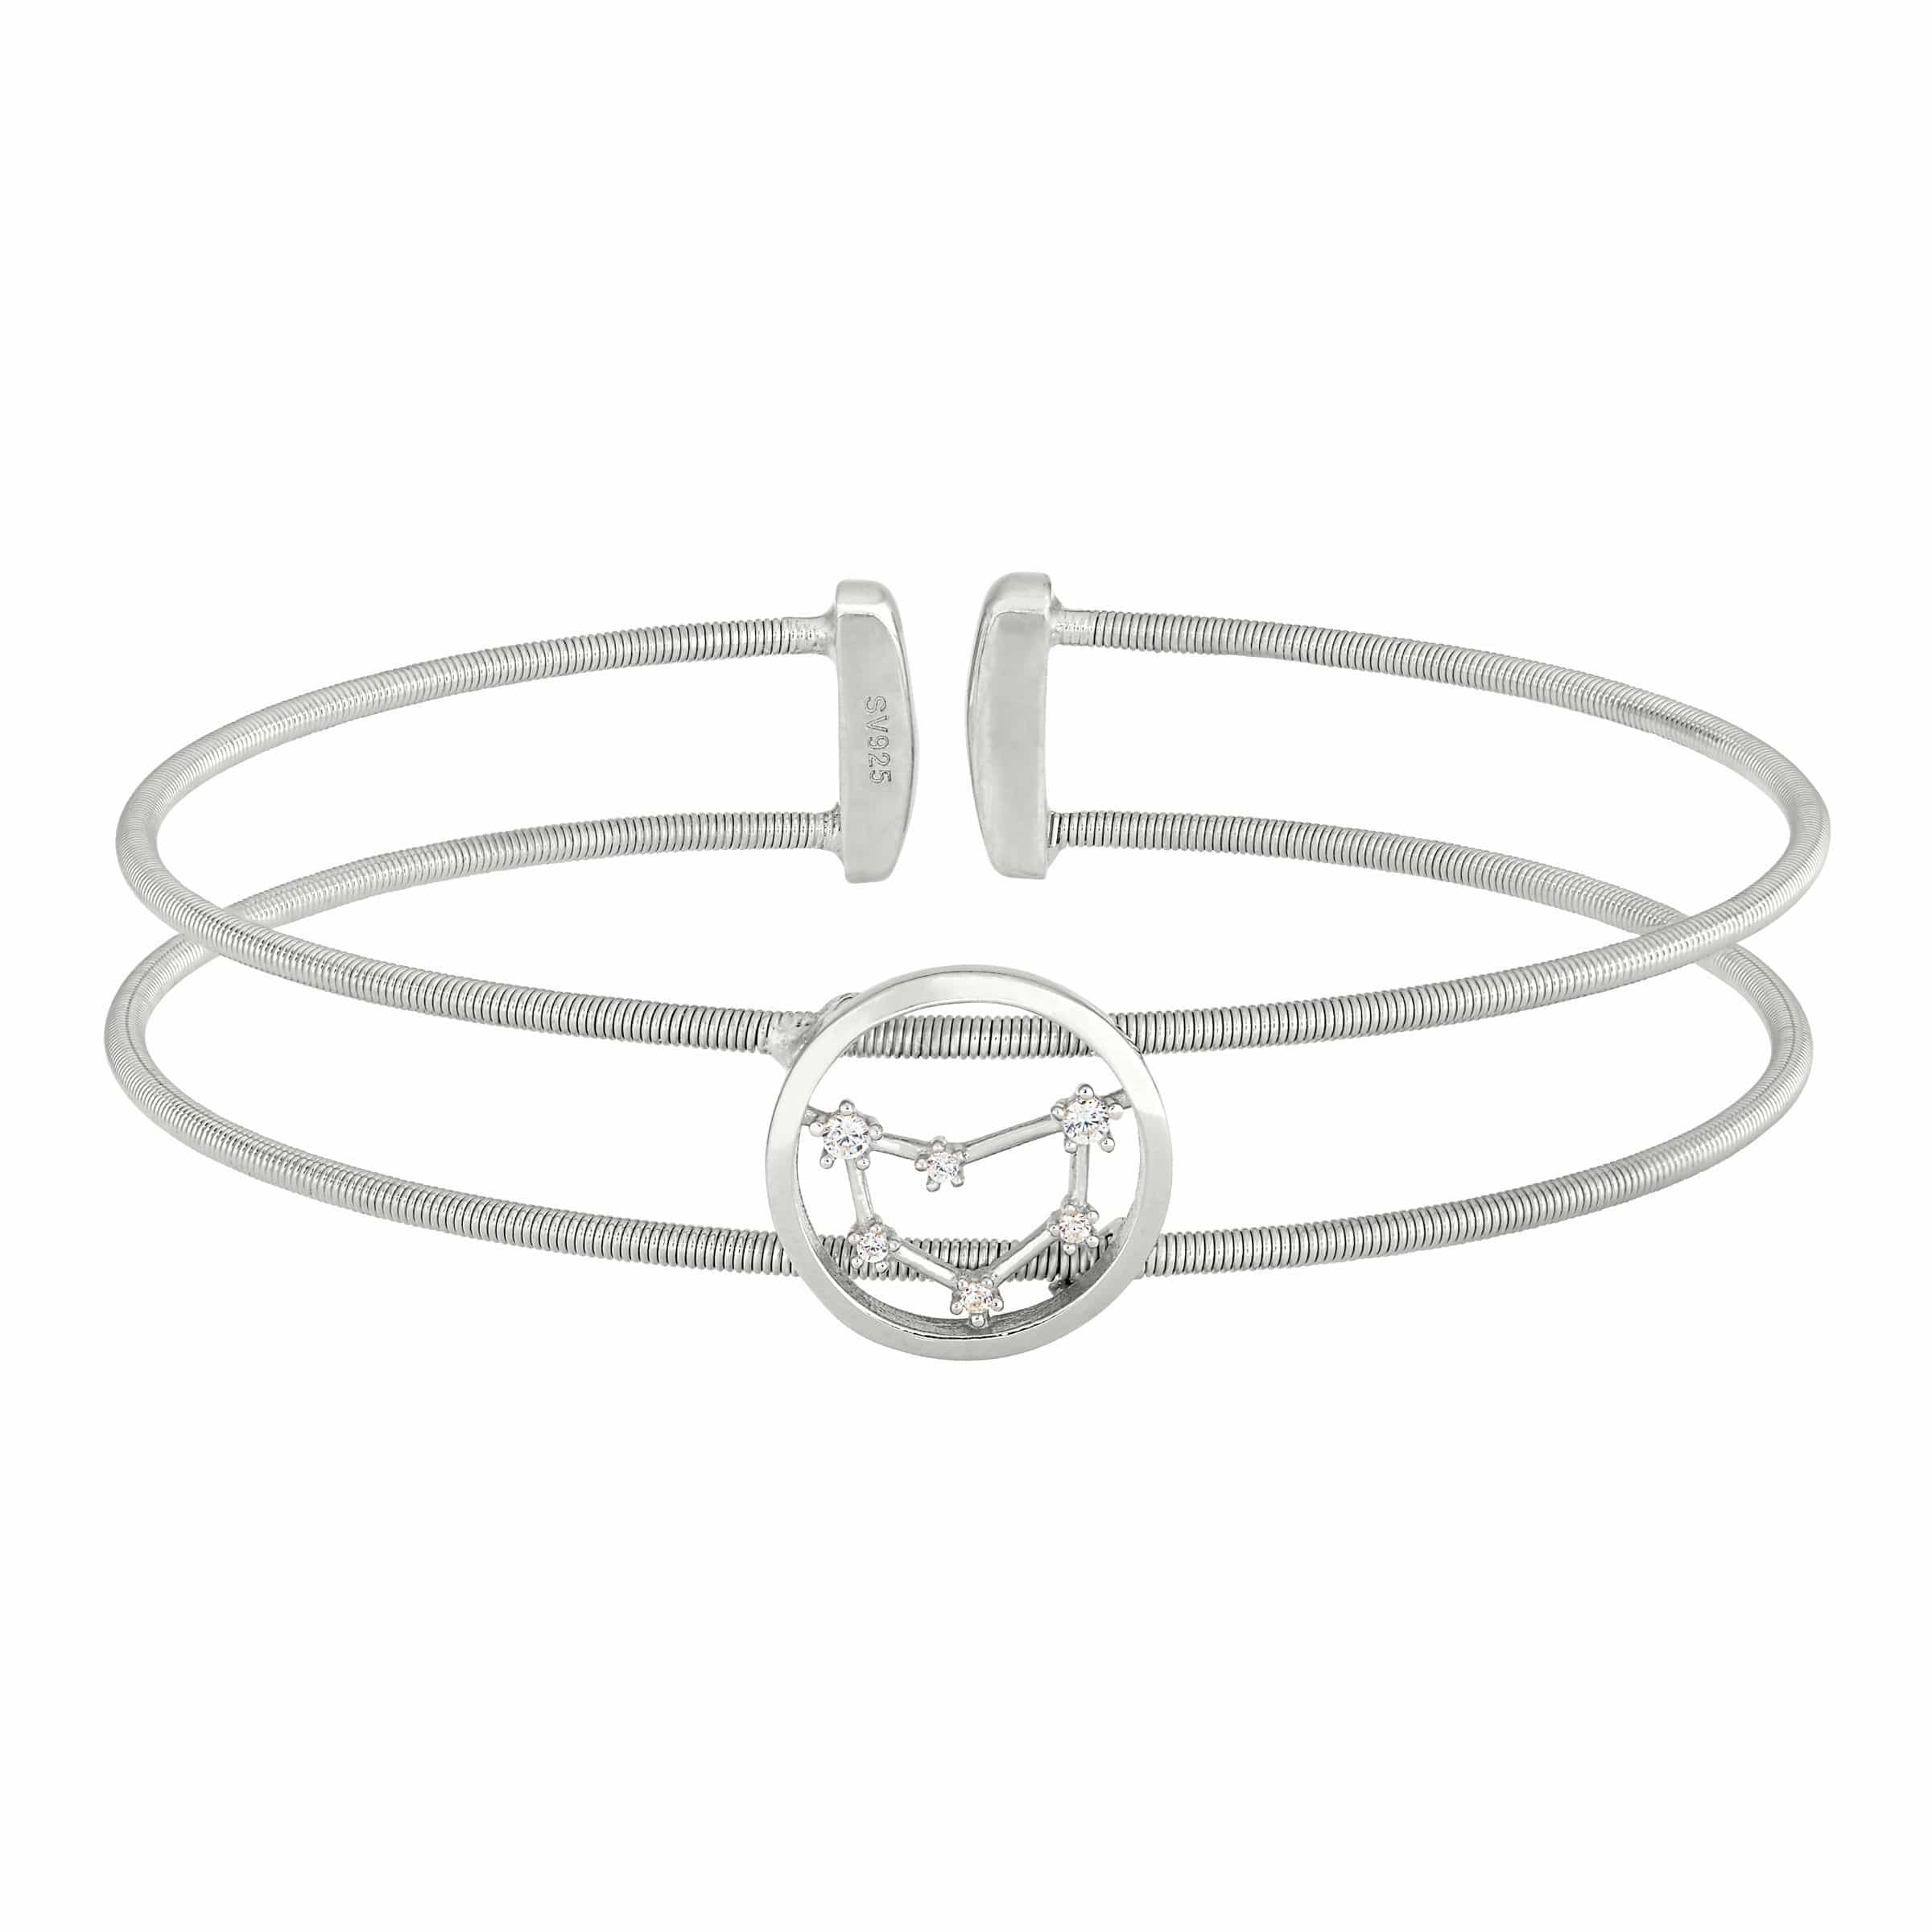 Rhodium Finish Sterling Silver Cable Cuff Constellation Capricorn Bracelet - LL7047B12-RH-Kelly Waters-Renee Taylor Gallery